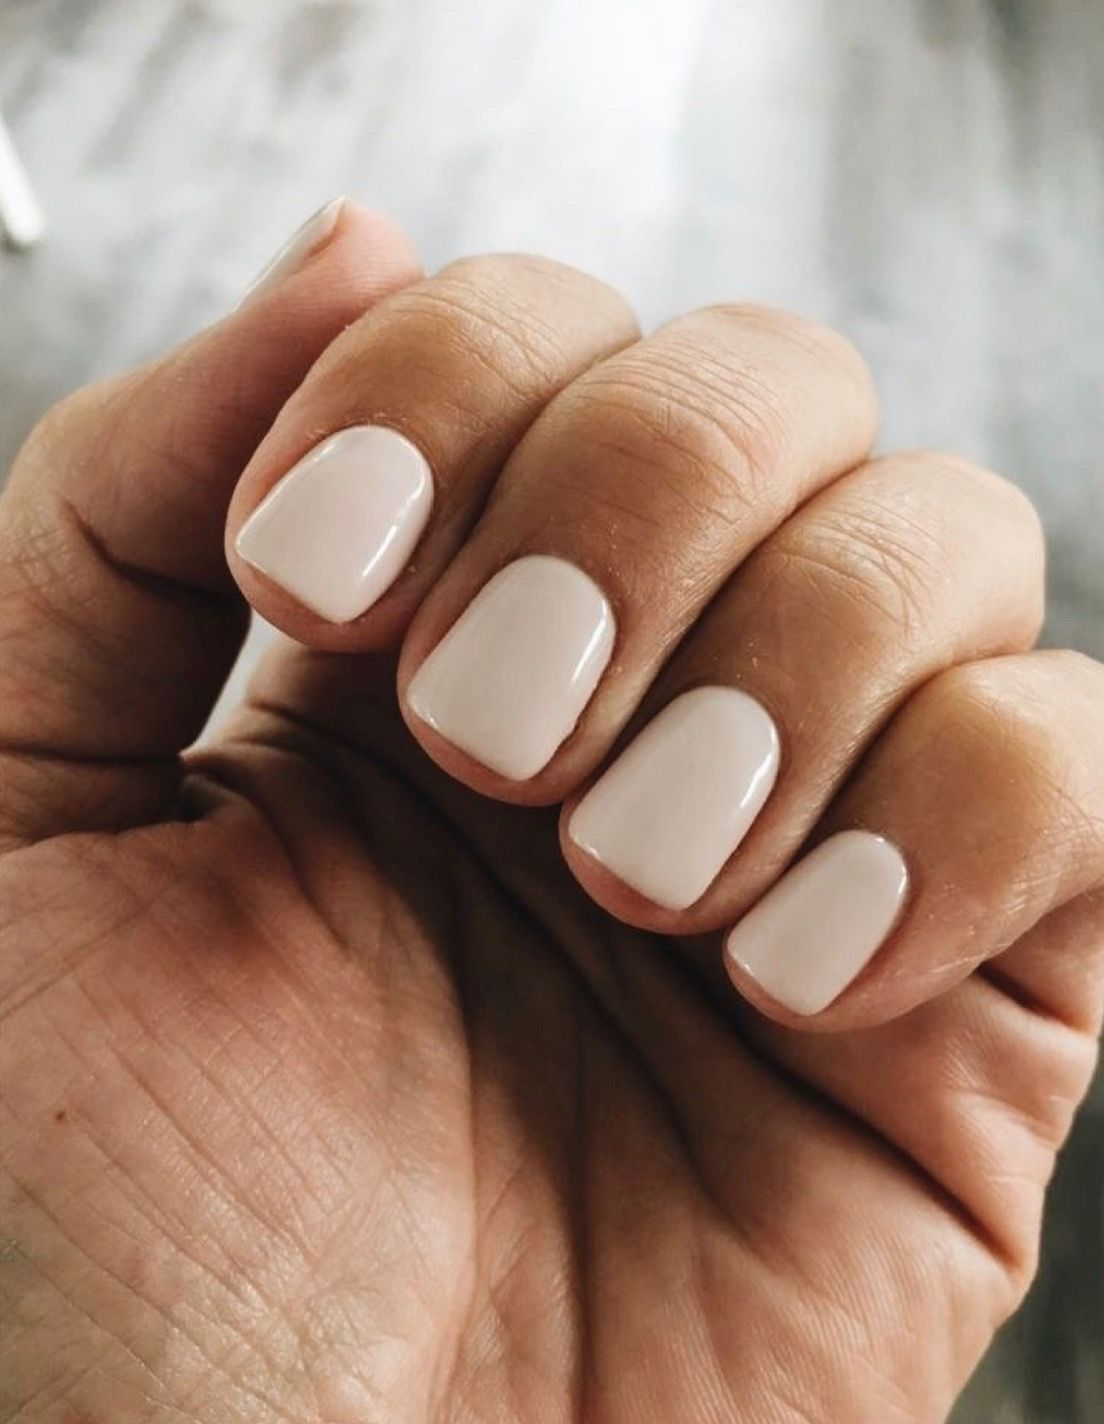 Gel Manicure On Natural Nails With A Short, Square Shape